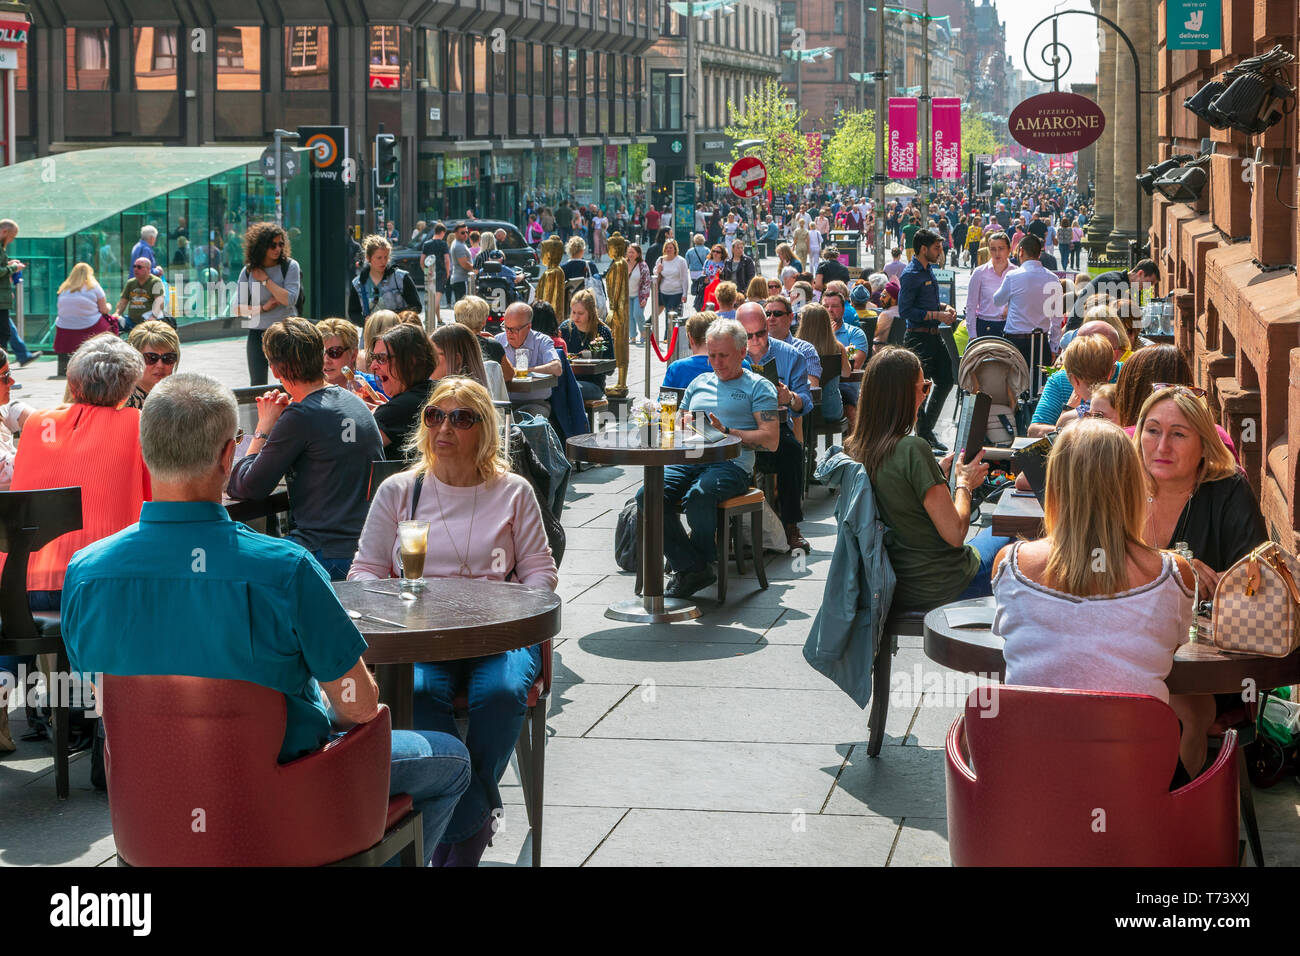 People sitting at outdoor tables at a restaurant in Buchanan Street, Glasgow, Scotland, UK - Stock Image